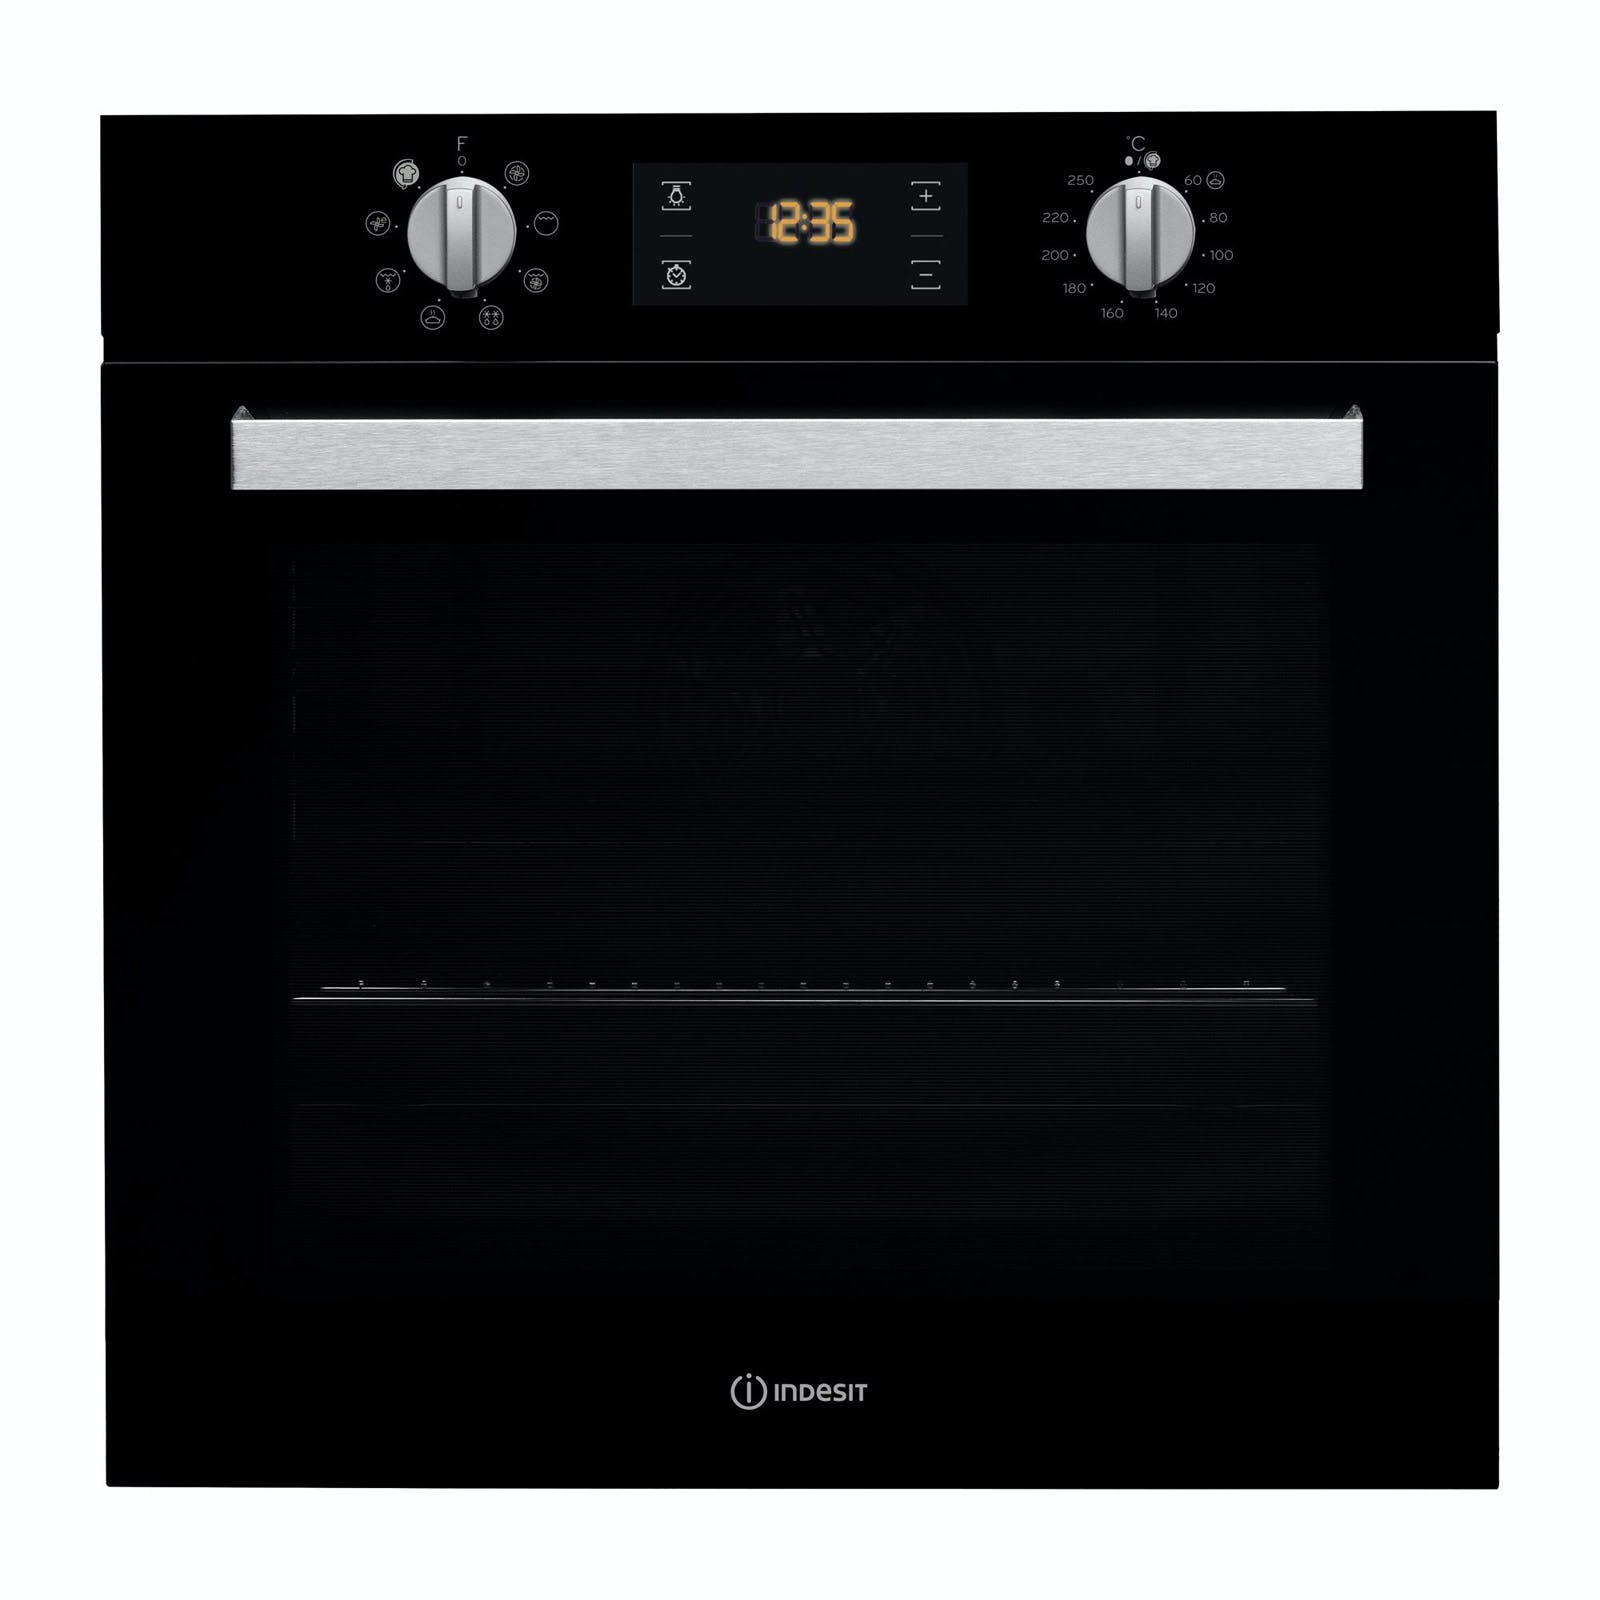 Indesit IFW6340BL